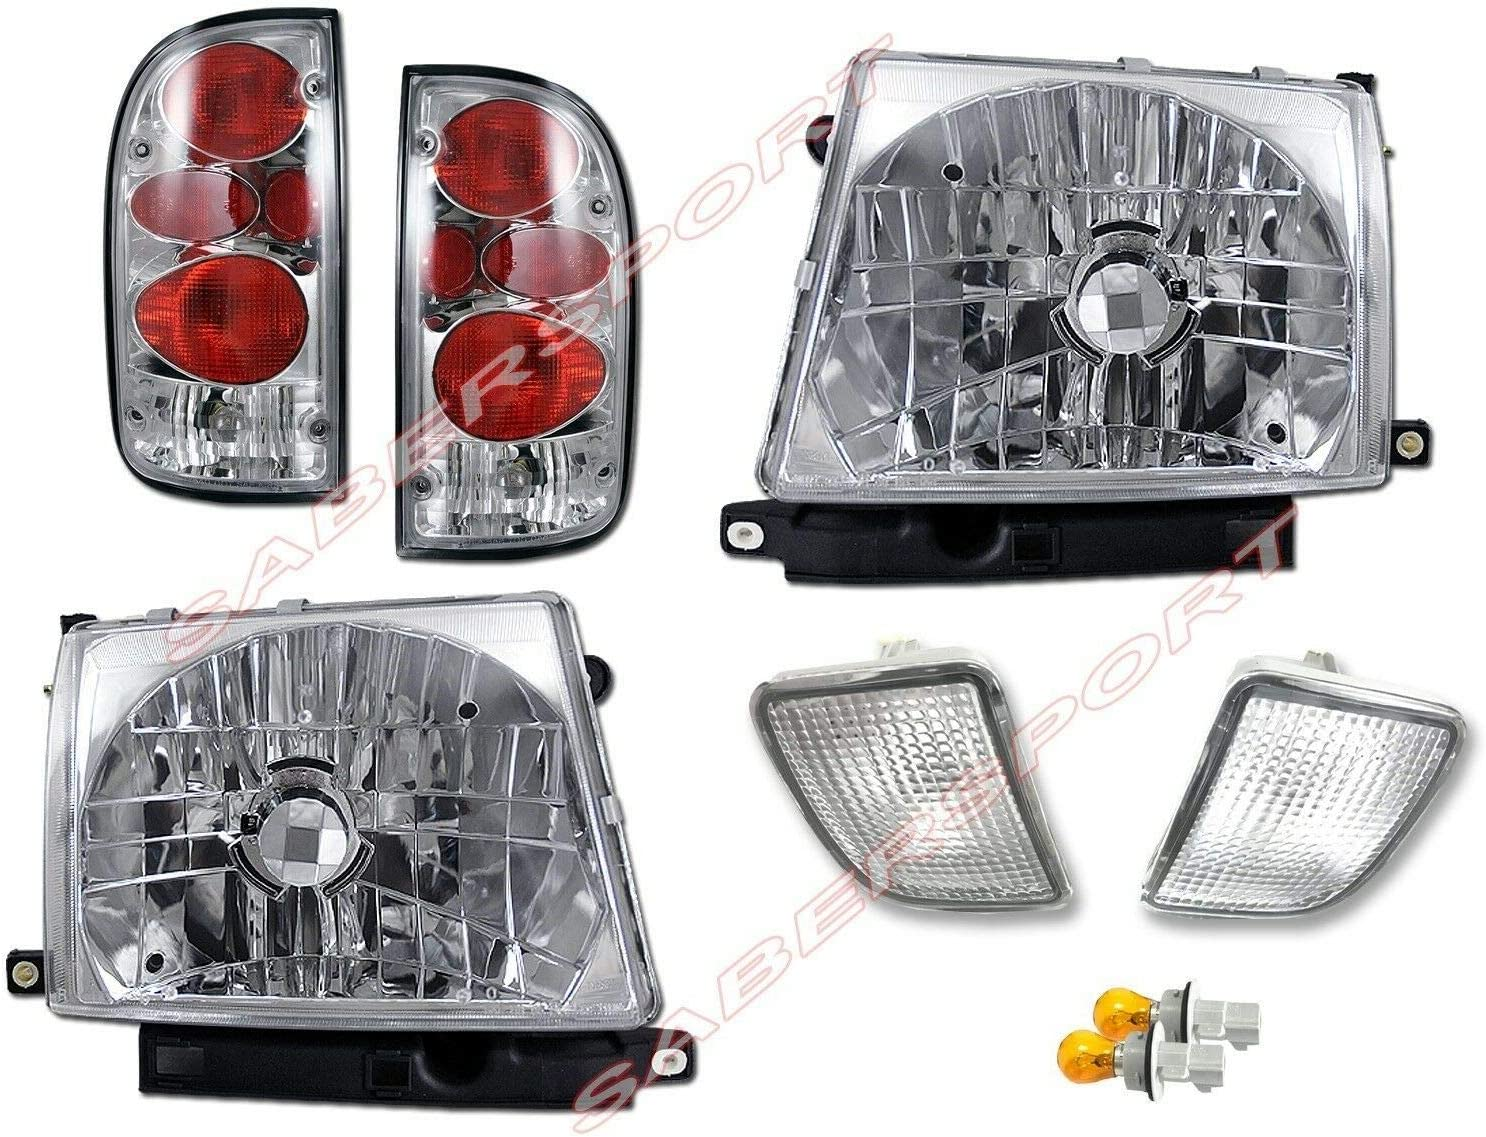 Set All items free shipping of Headlights + Popularity Bumper Lights 4WD Taillights for P 98-00